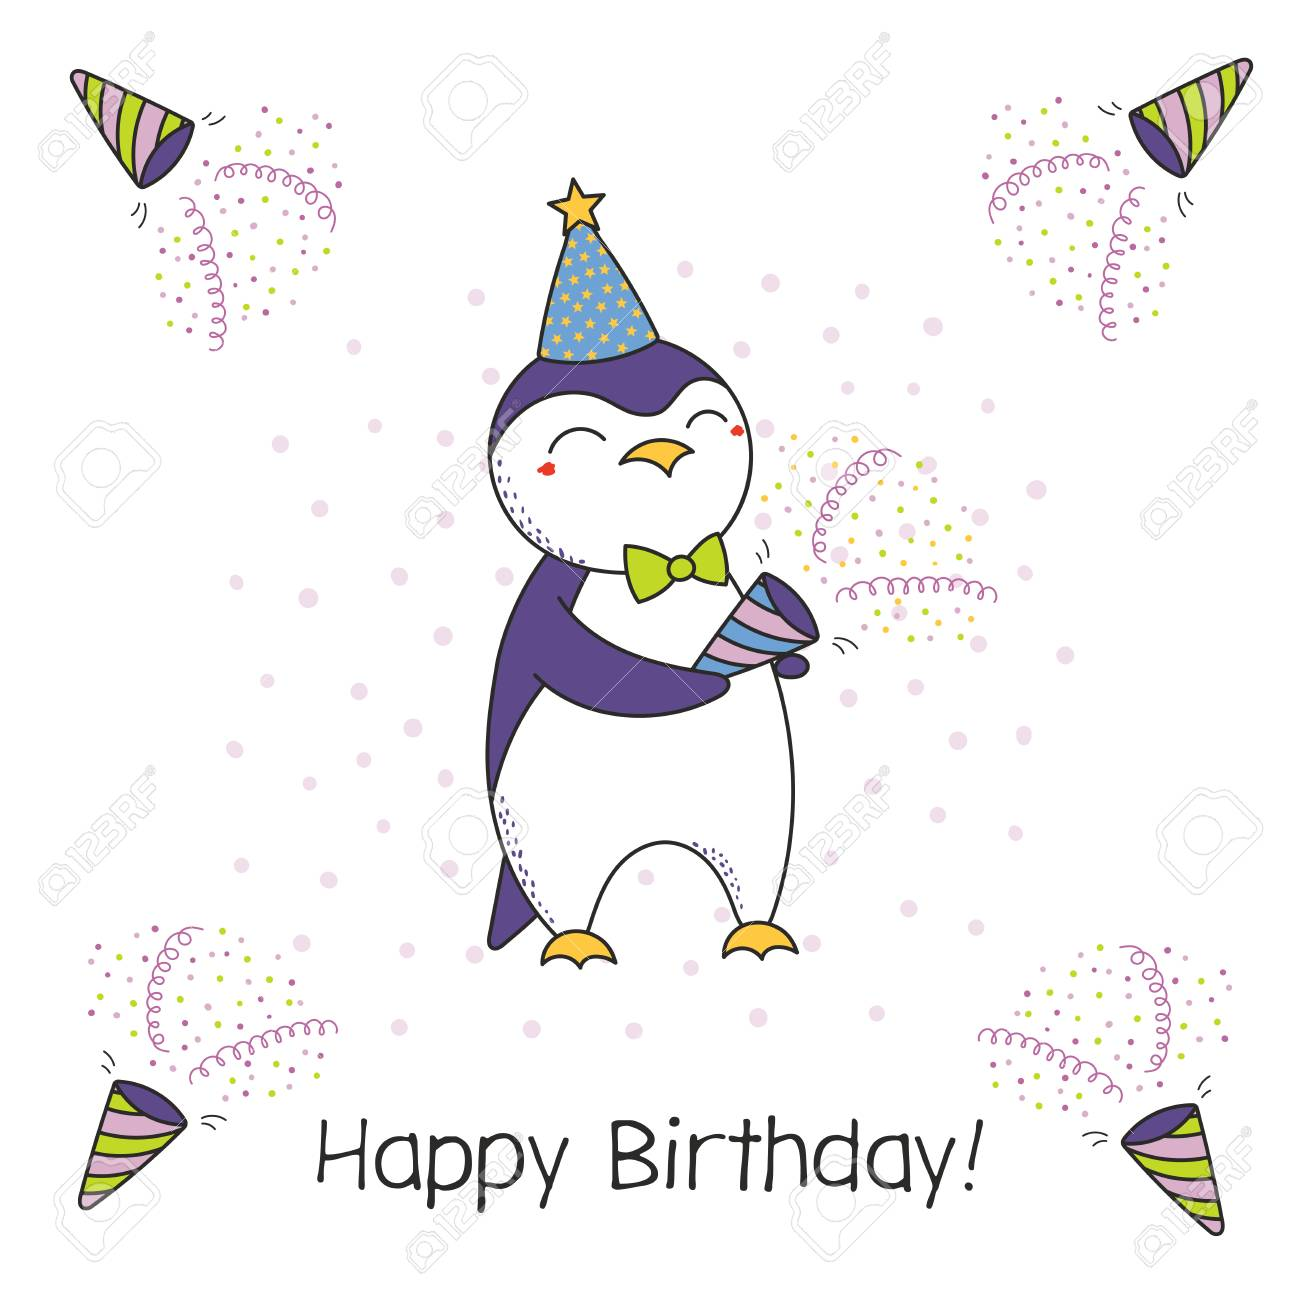 Hand Drawn Happy Birthday Greeting Card With Cute Funny Cartoon Penguin A Party Popper